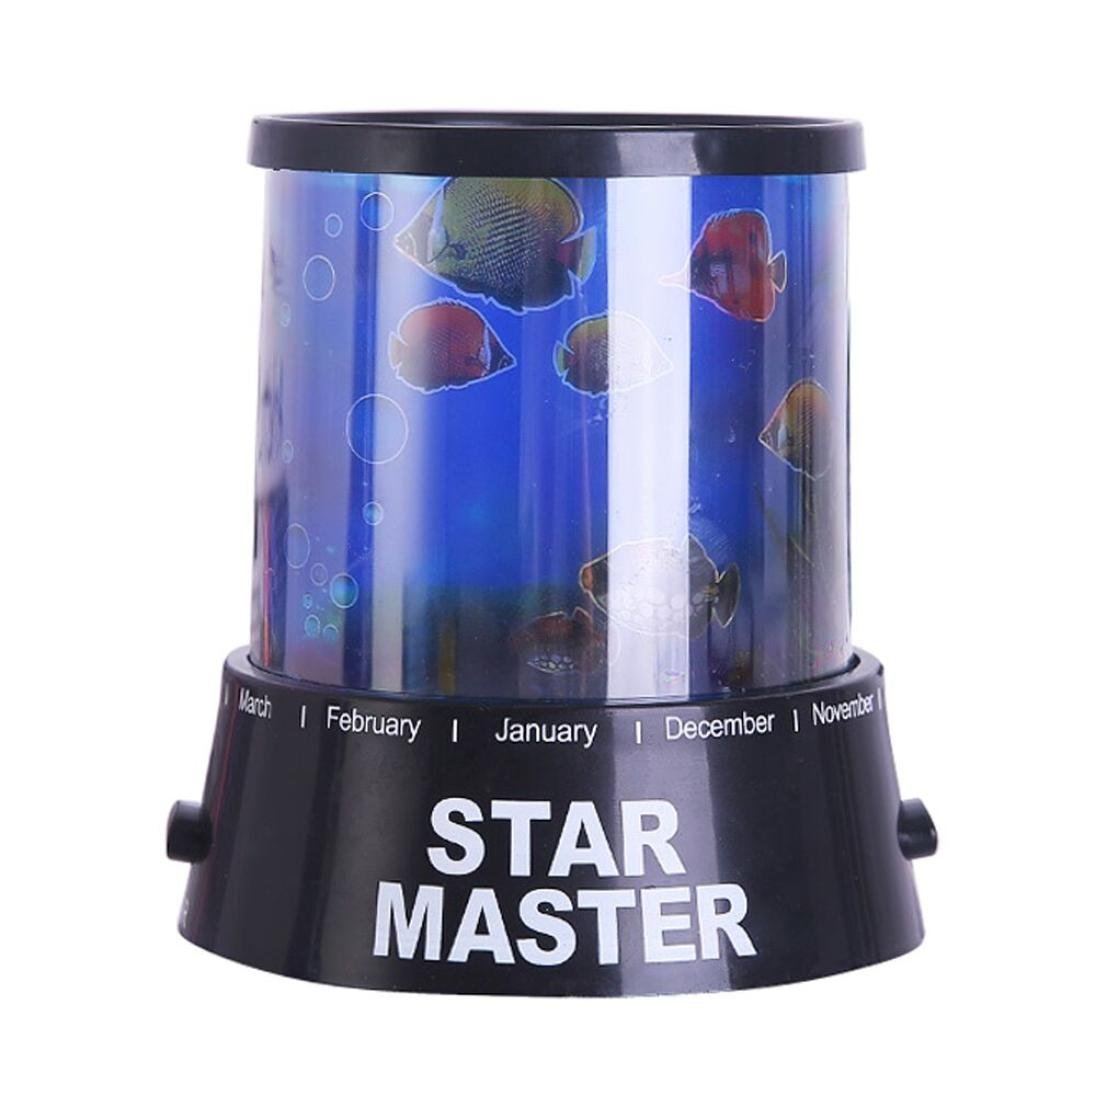 Stylish House Party Decor Night Light/ Projection Lamp Star,Y56 Celestial Star Cosmos Night Lamp Night Lights Projection Projector Starry Sky (A) 5656YAO